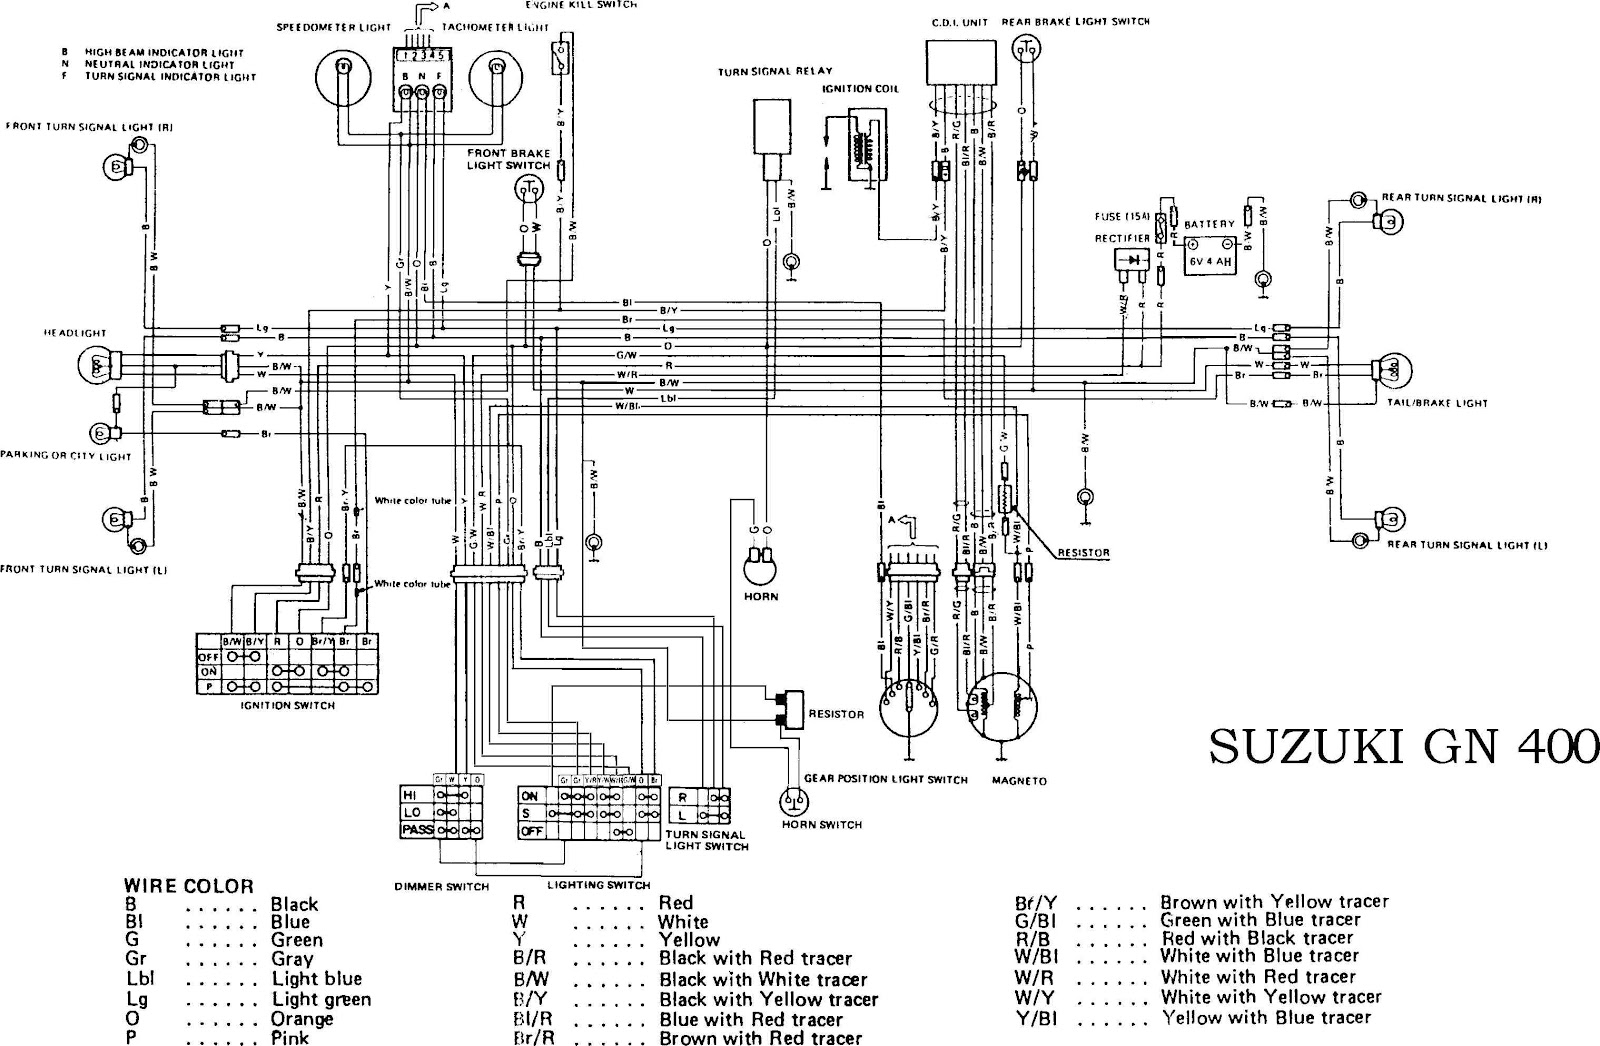 1998 mitsubishi box truck wire diagram